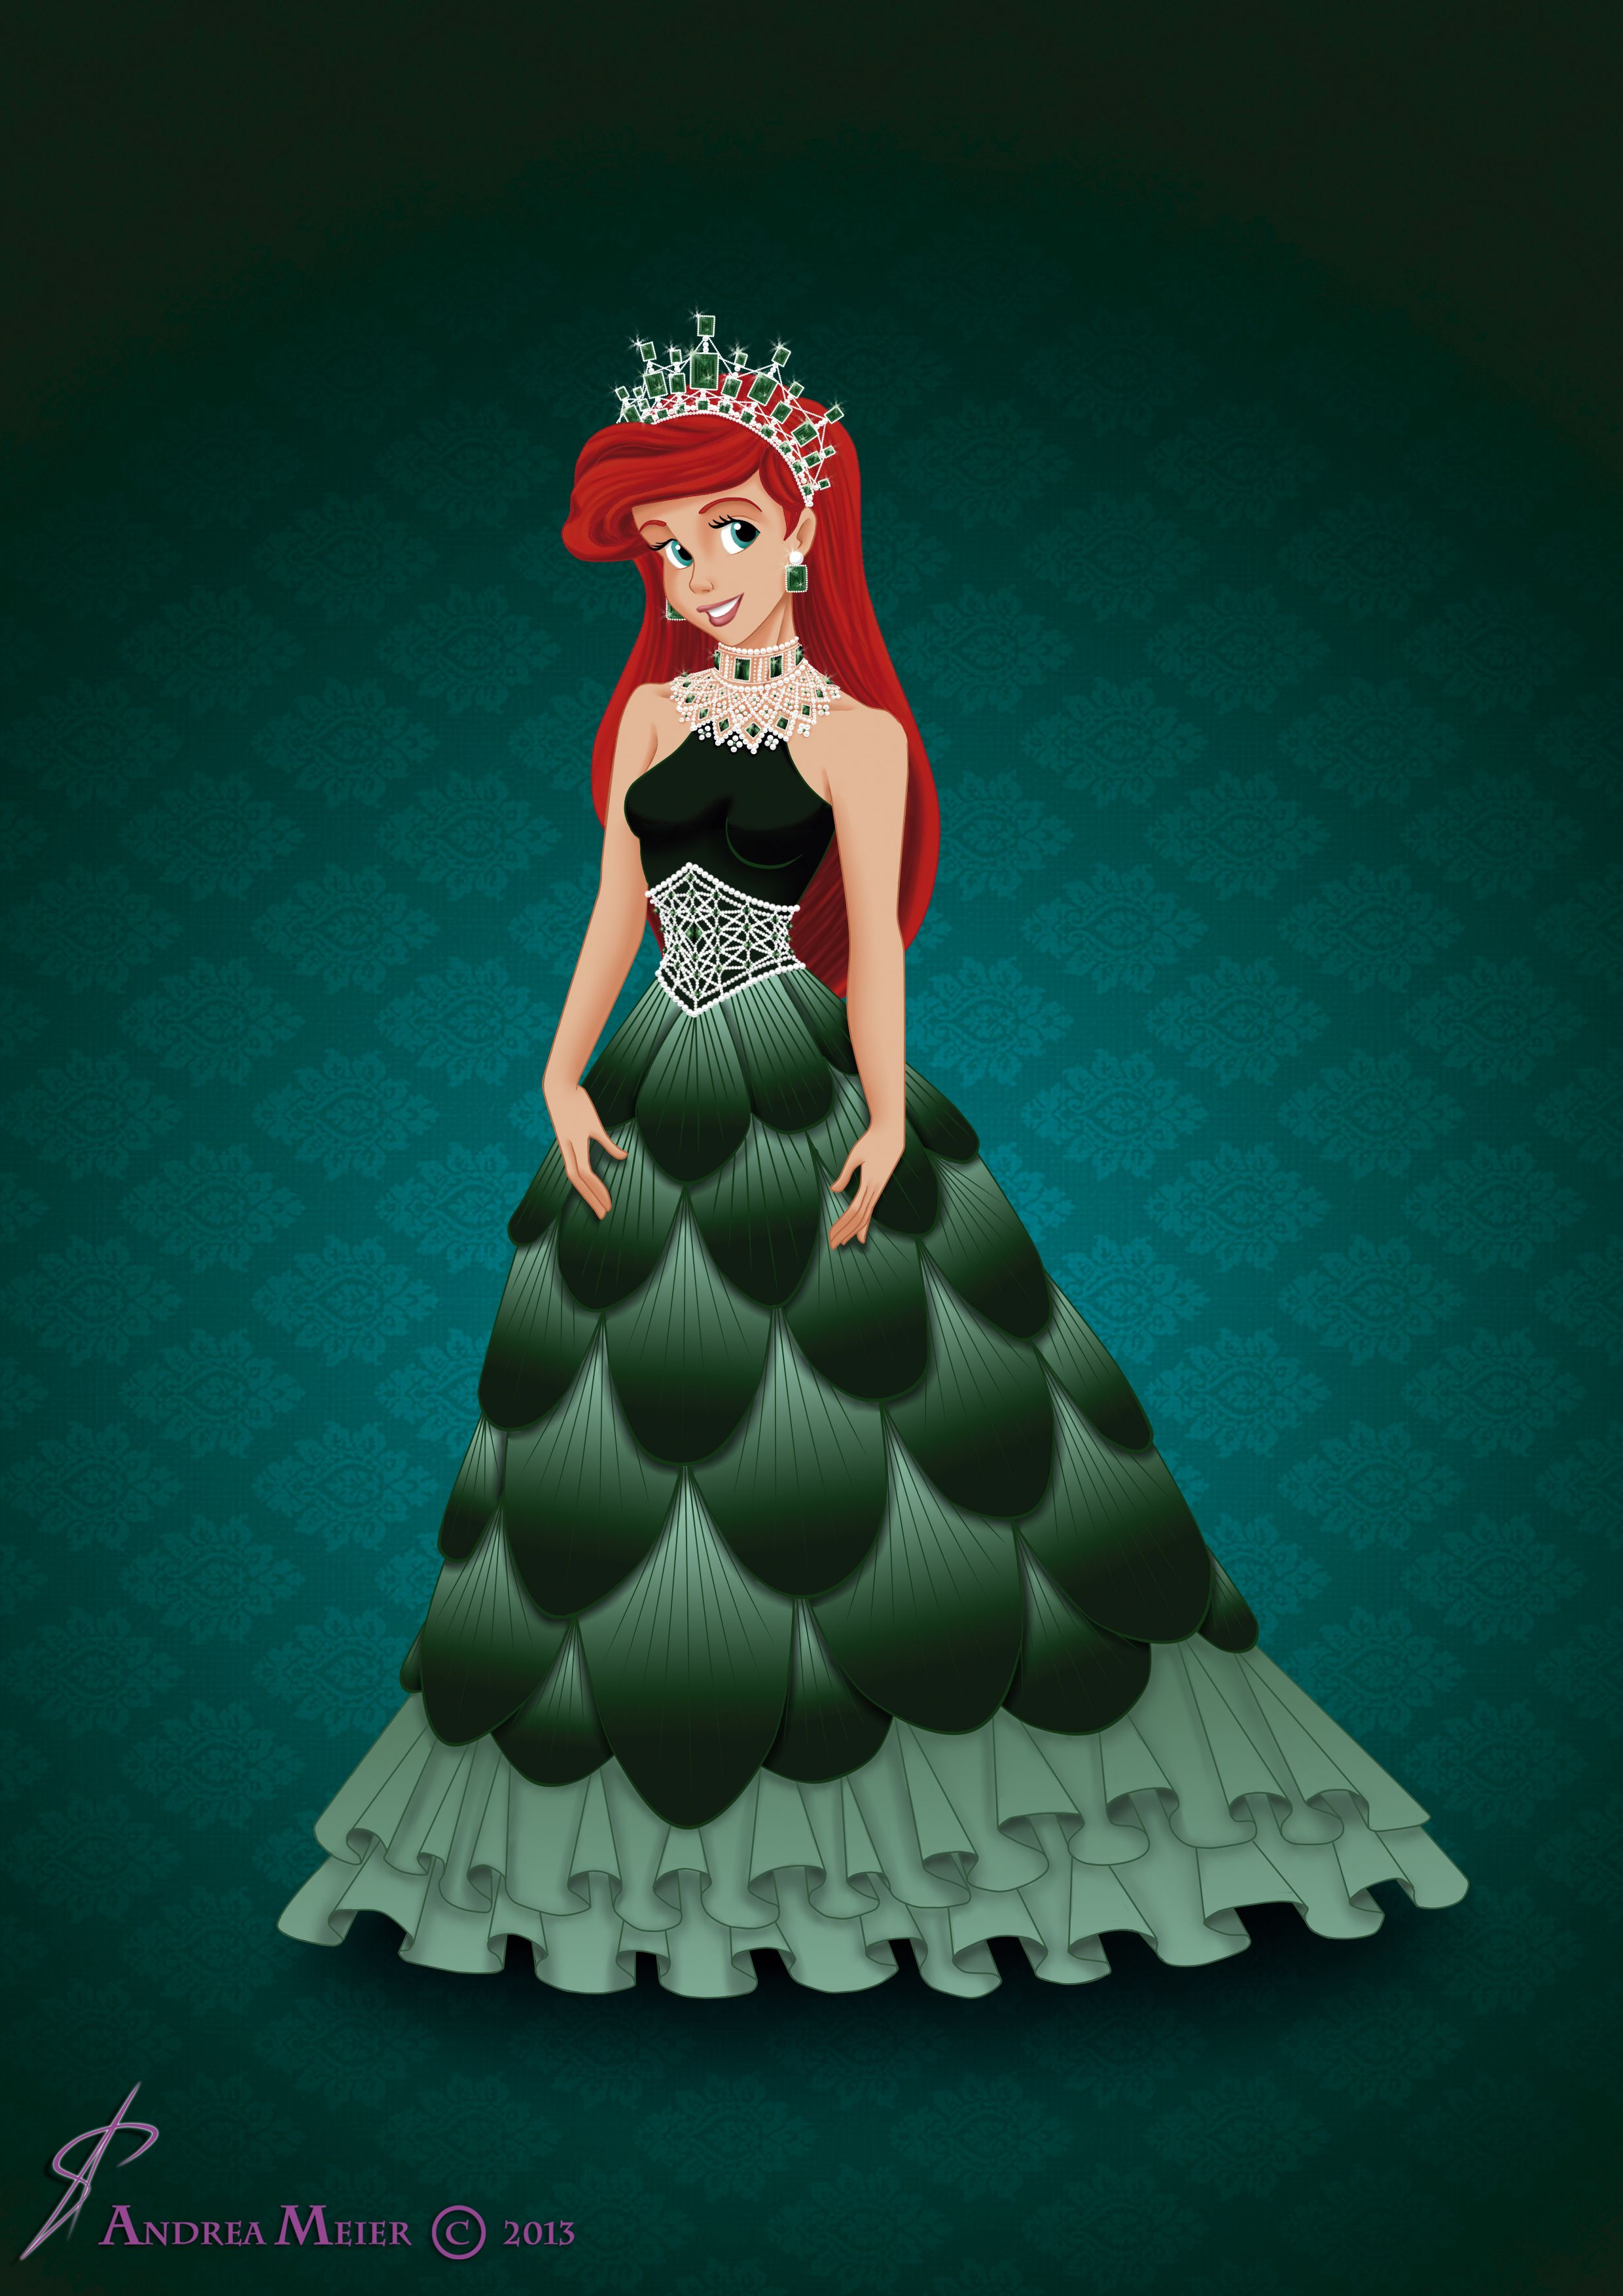 The dress ariel wore - Find This Pin And More On The Little Mermaid Royal Jewels Dress Edition Ariel